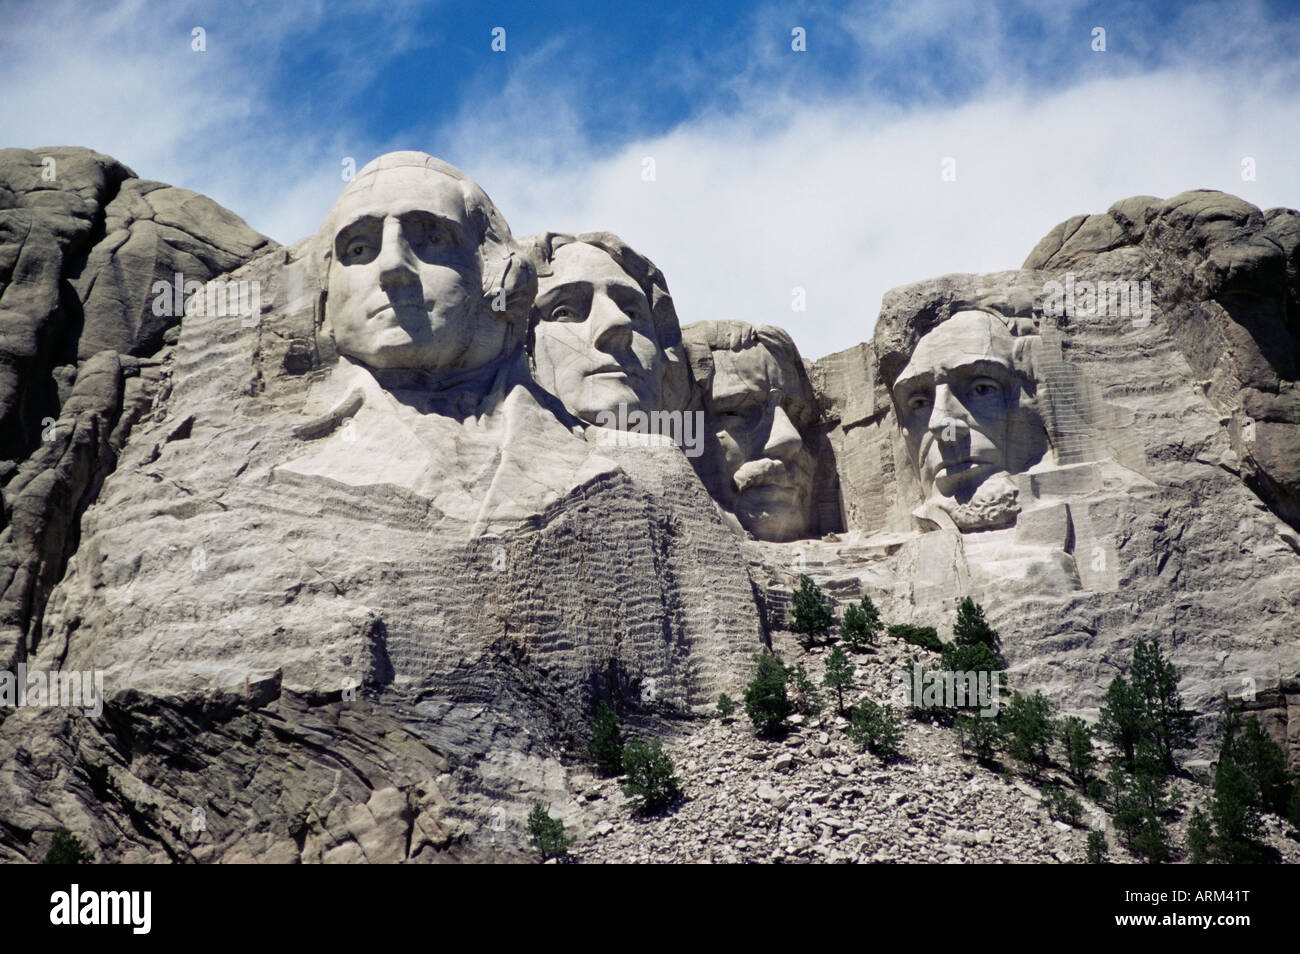 Mount Rushmore National Monument, Black Hills, South Dakota, United States of America, North America Stock Photo